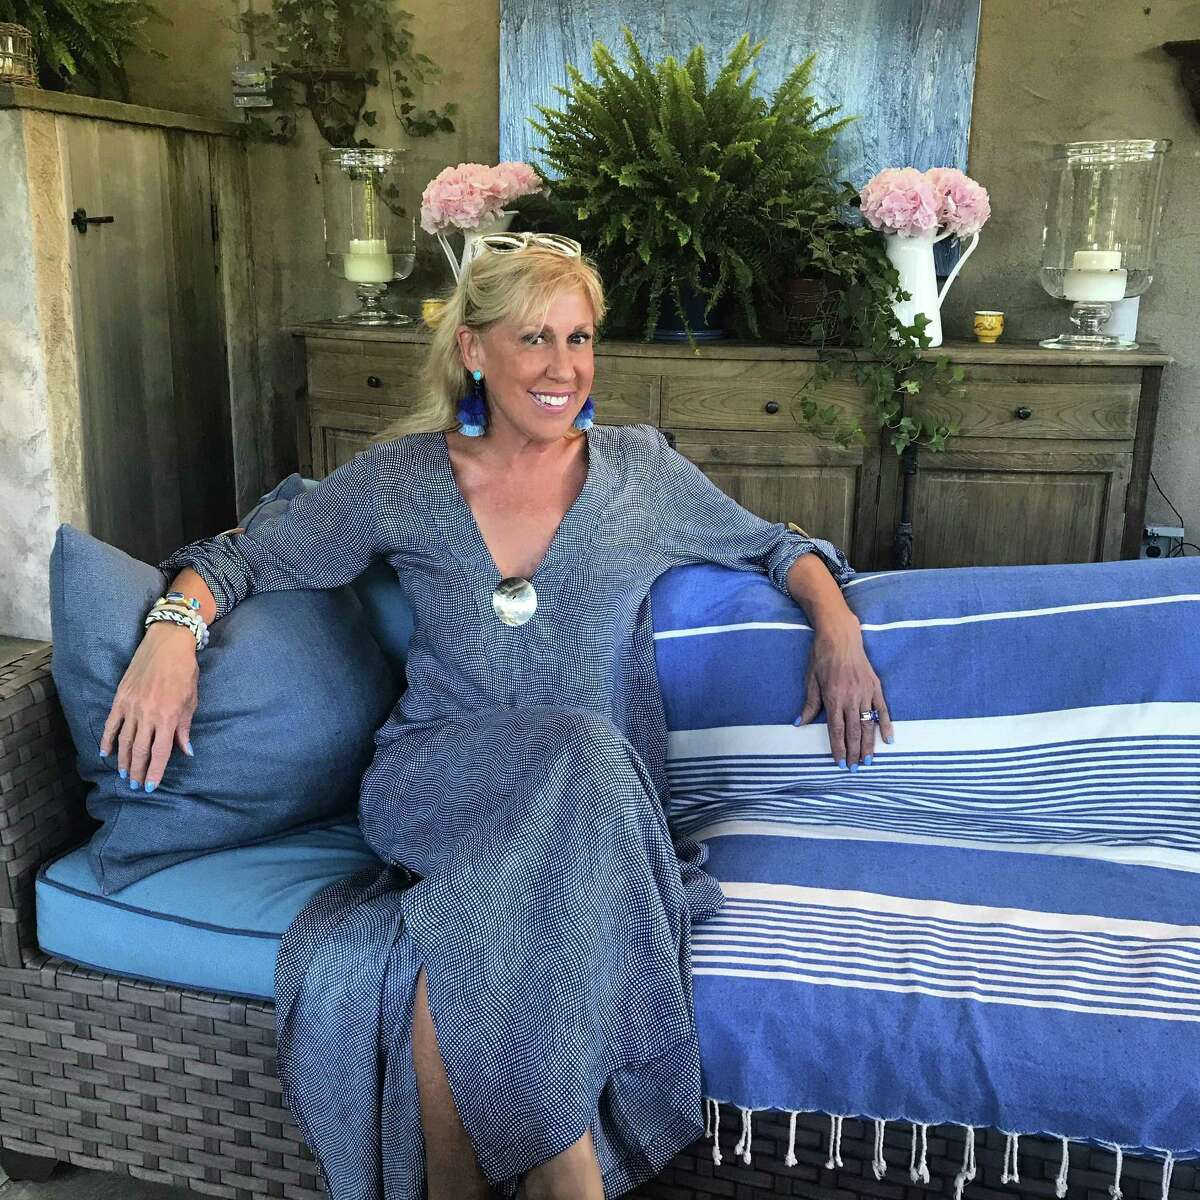 Laurette Kittle poses in the Seychelles kaftan, one of many kaftan styles offered by her company Walker&Wade, which is based in Greenwich. This is the latest, and it already has a following. Kaftans, which have been around for thousands of years, are having a bit of a fashion moment.